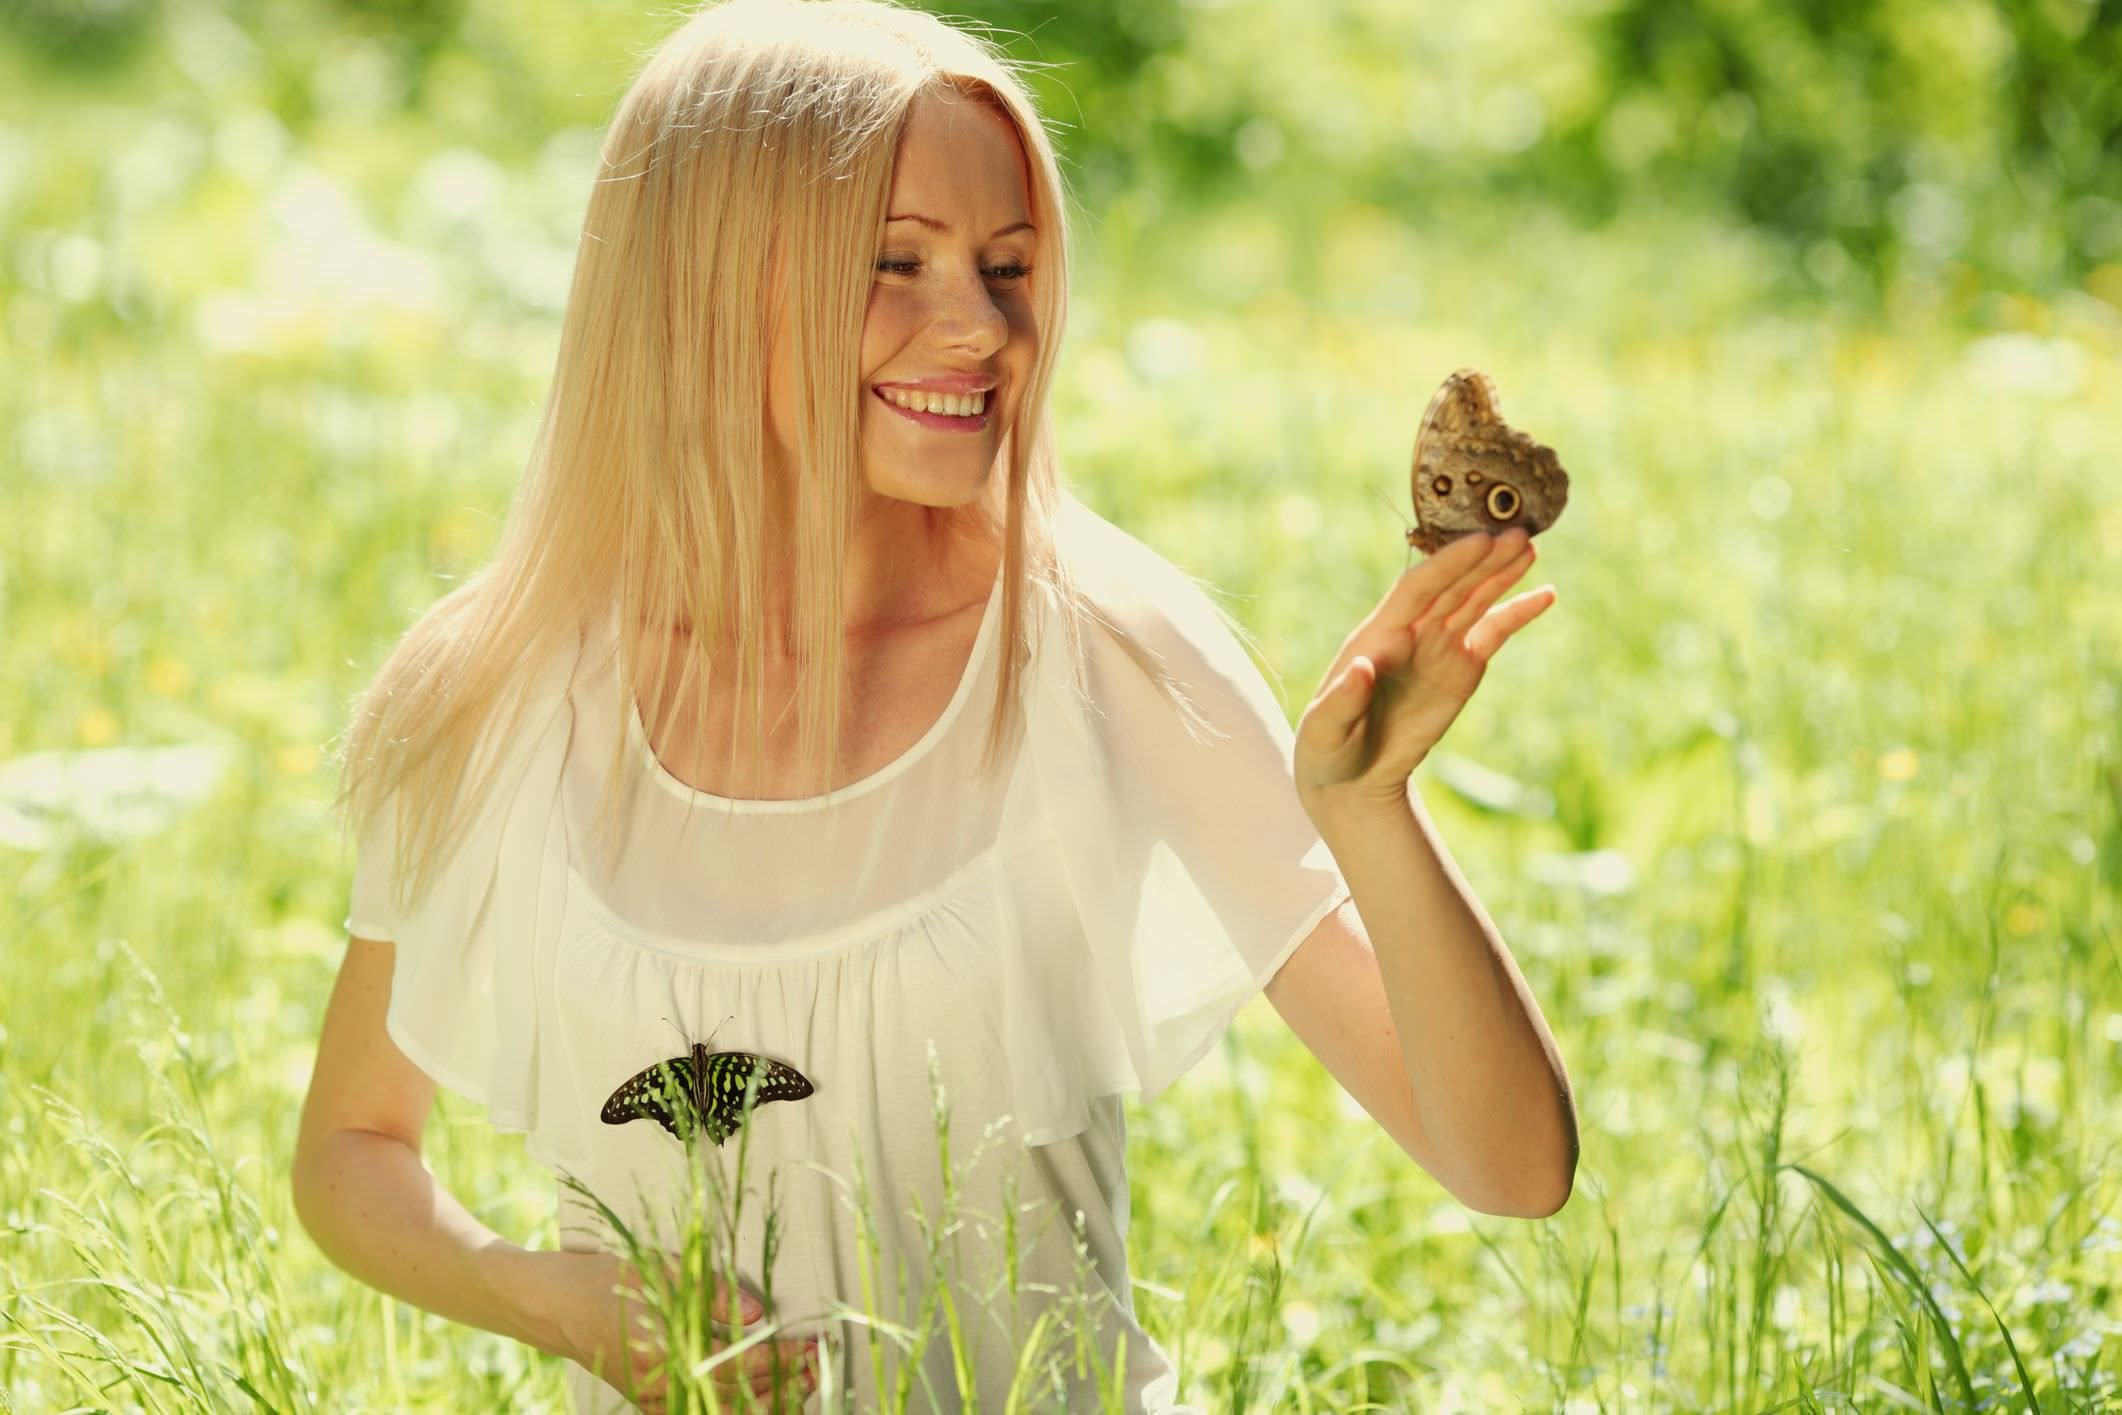 Woman in field holding butterfly  image